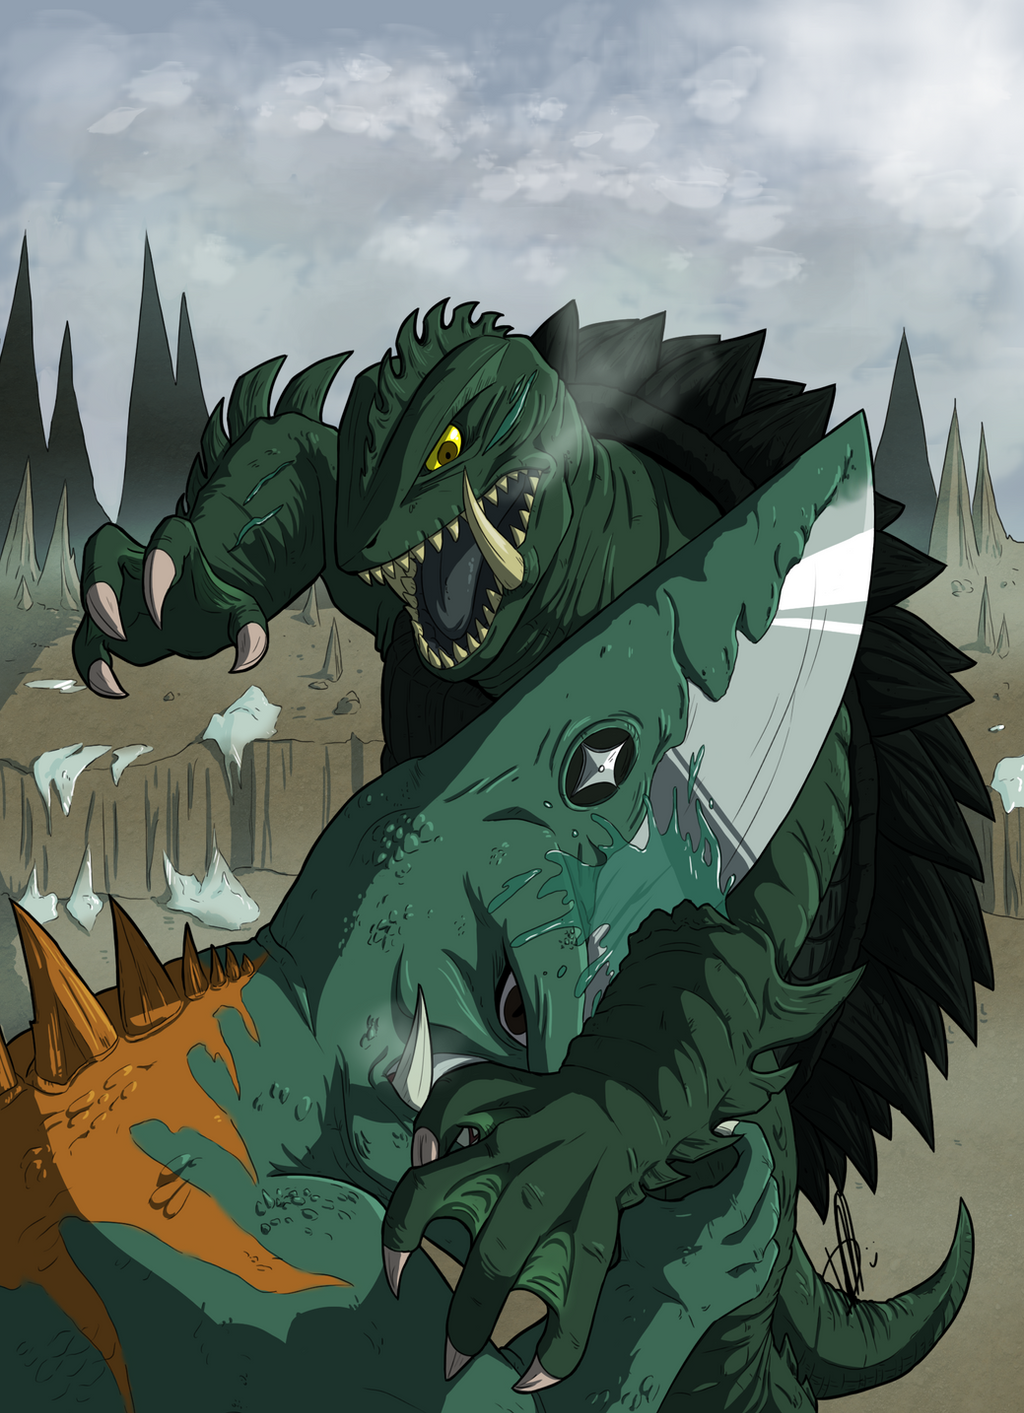 Gamera by Daikaiju-Danielle on DeviantArt